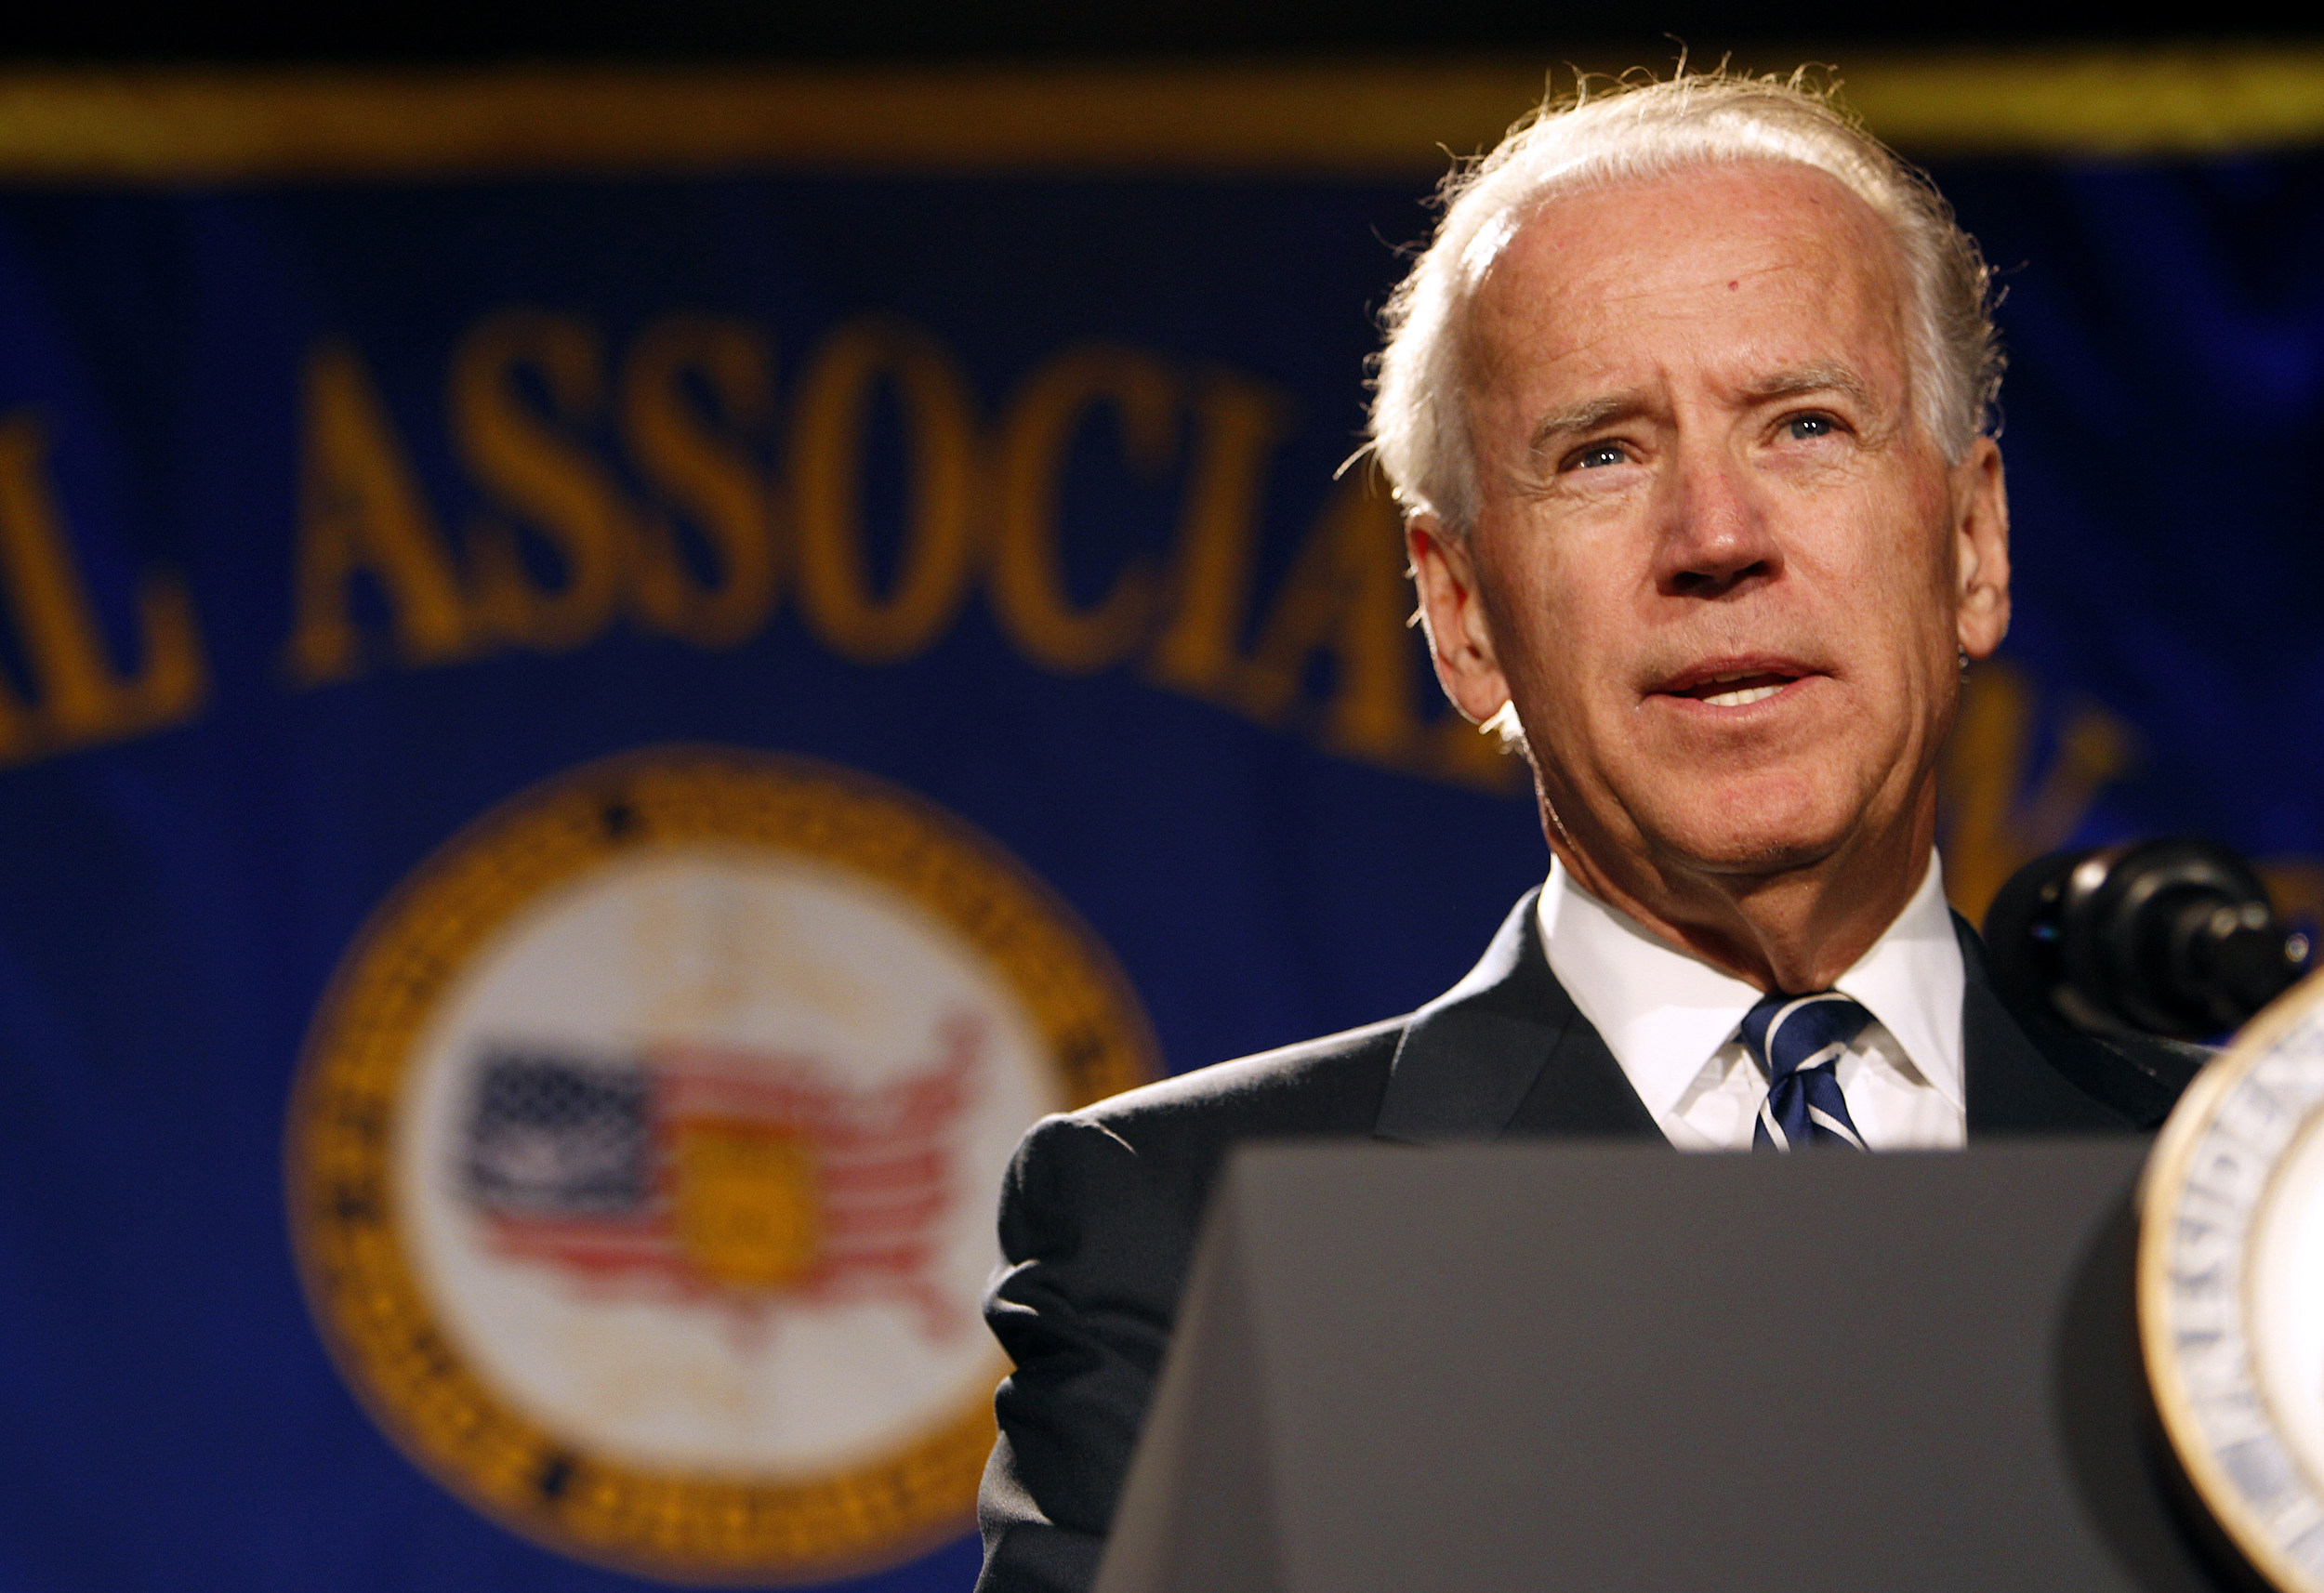 WATCH: President Biden addresses the nation about war in Afghanistan